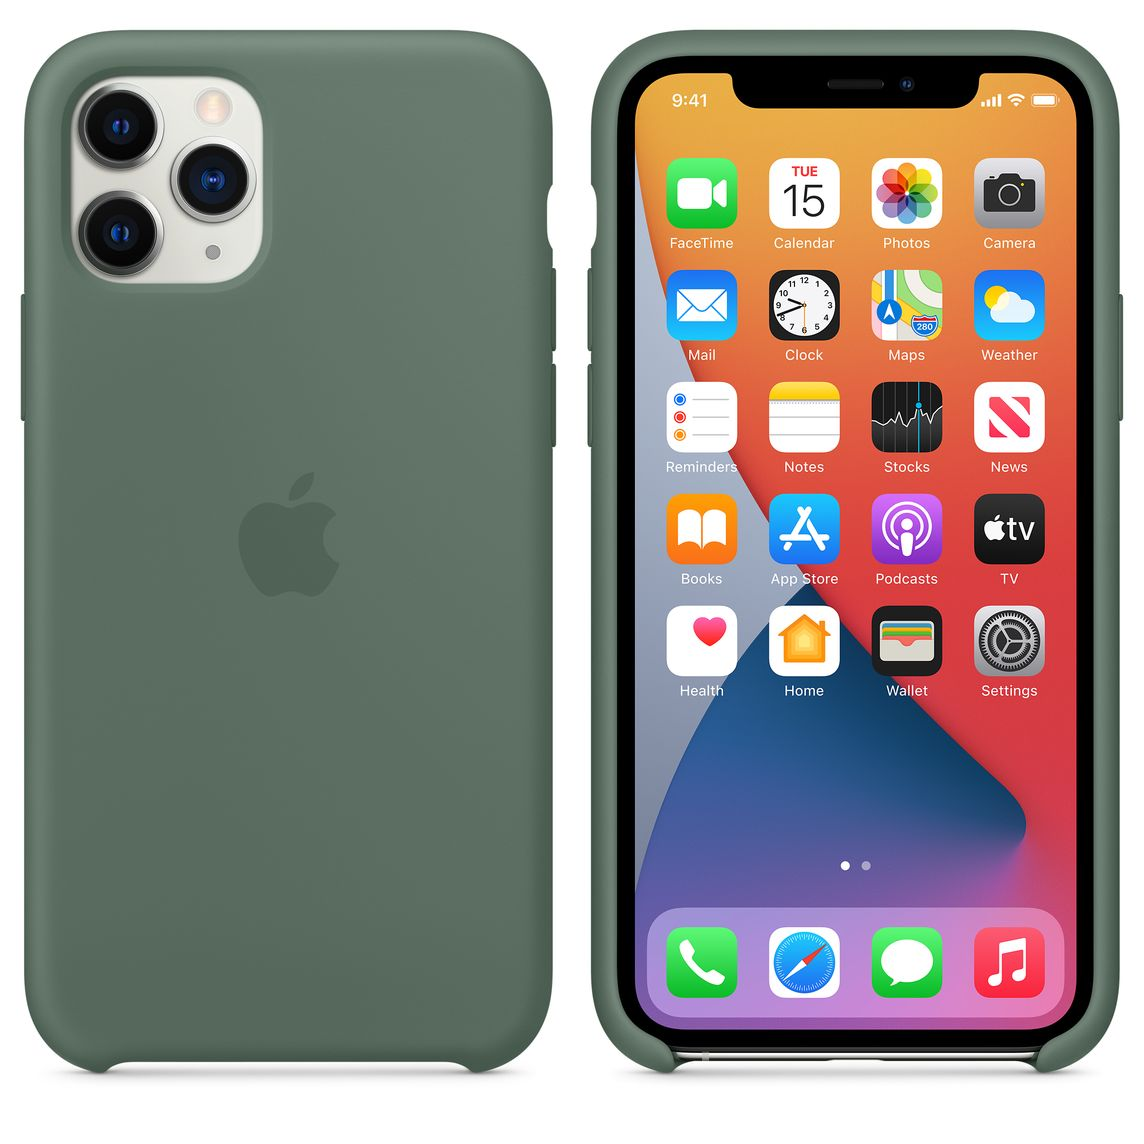 COVER per Iphone 11 / Pro Max L' ORIGINALE Silicone CUSTODIA